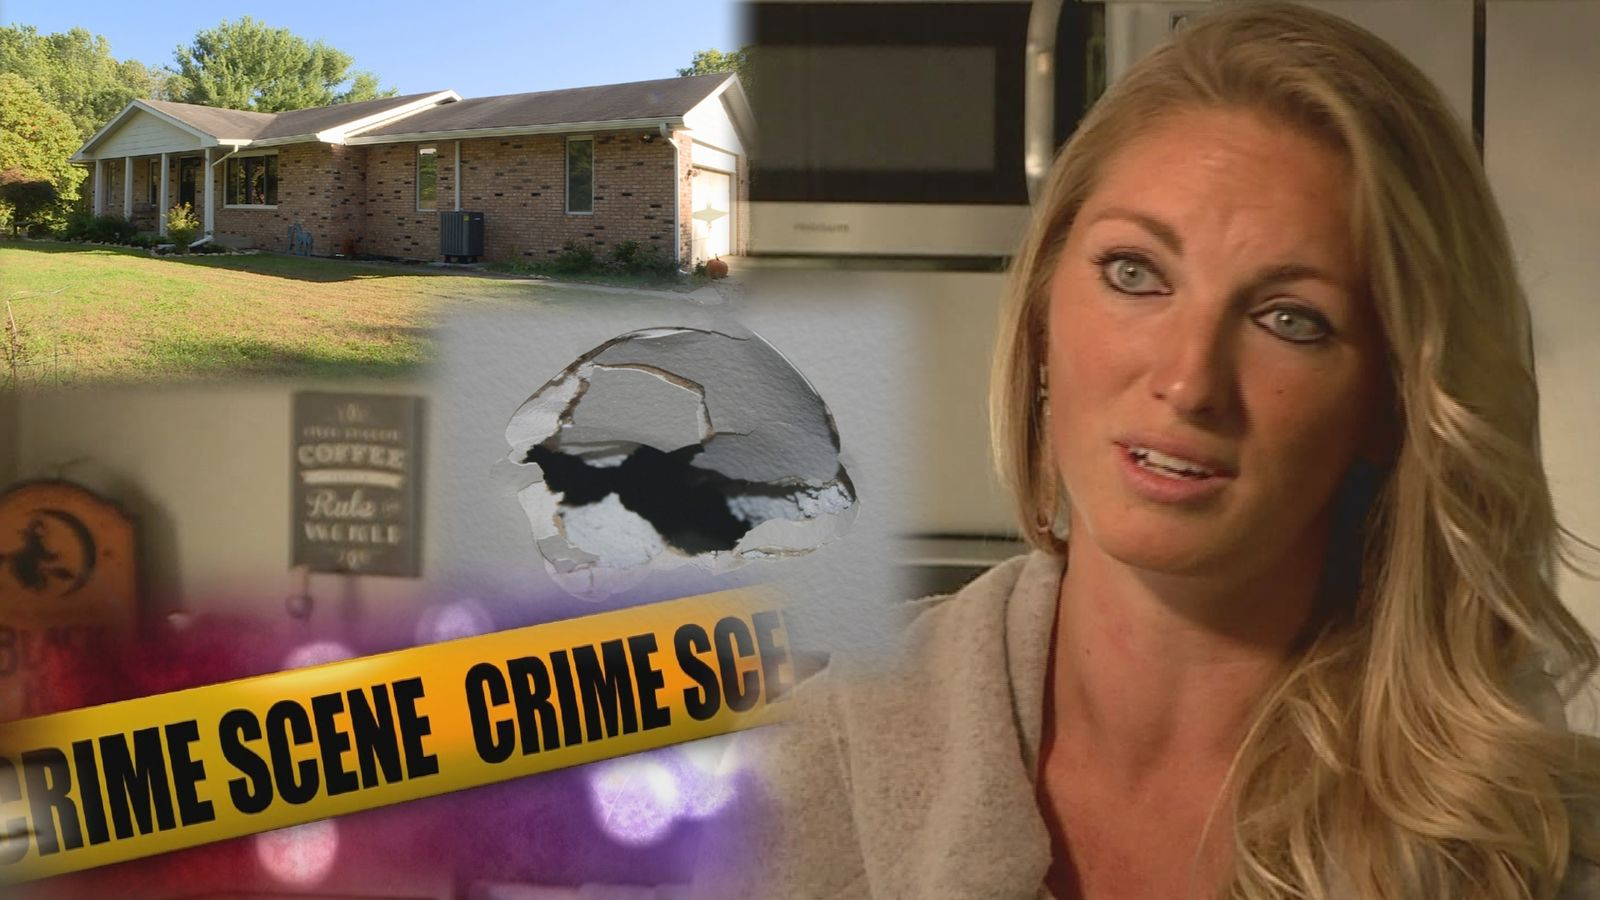 An Airbnb host returned to find thousands of dollars of damage and a violent crime scene after renting her home. (Image: WSBT 22)